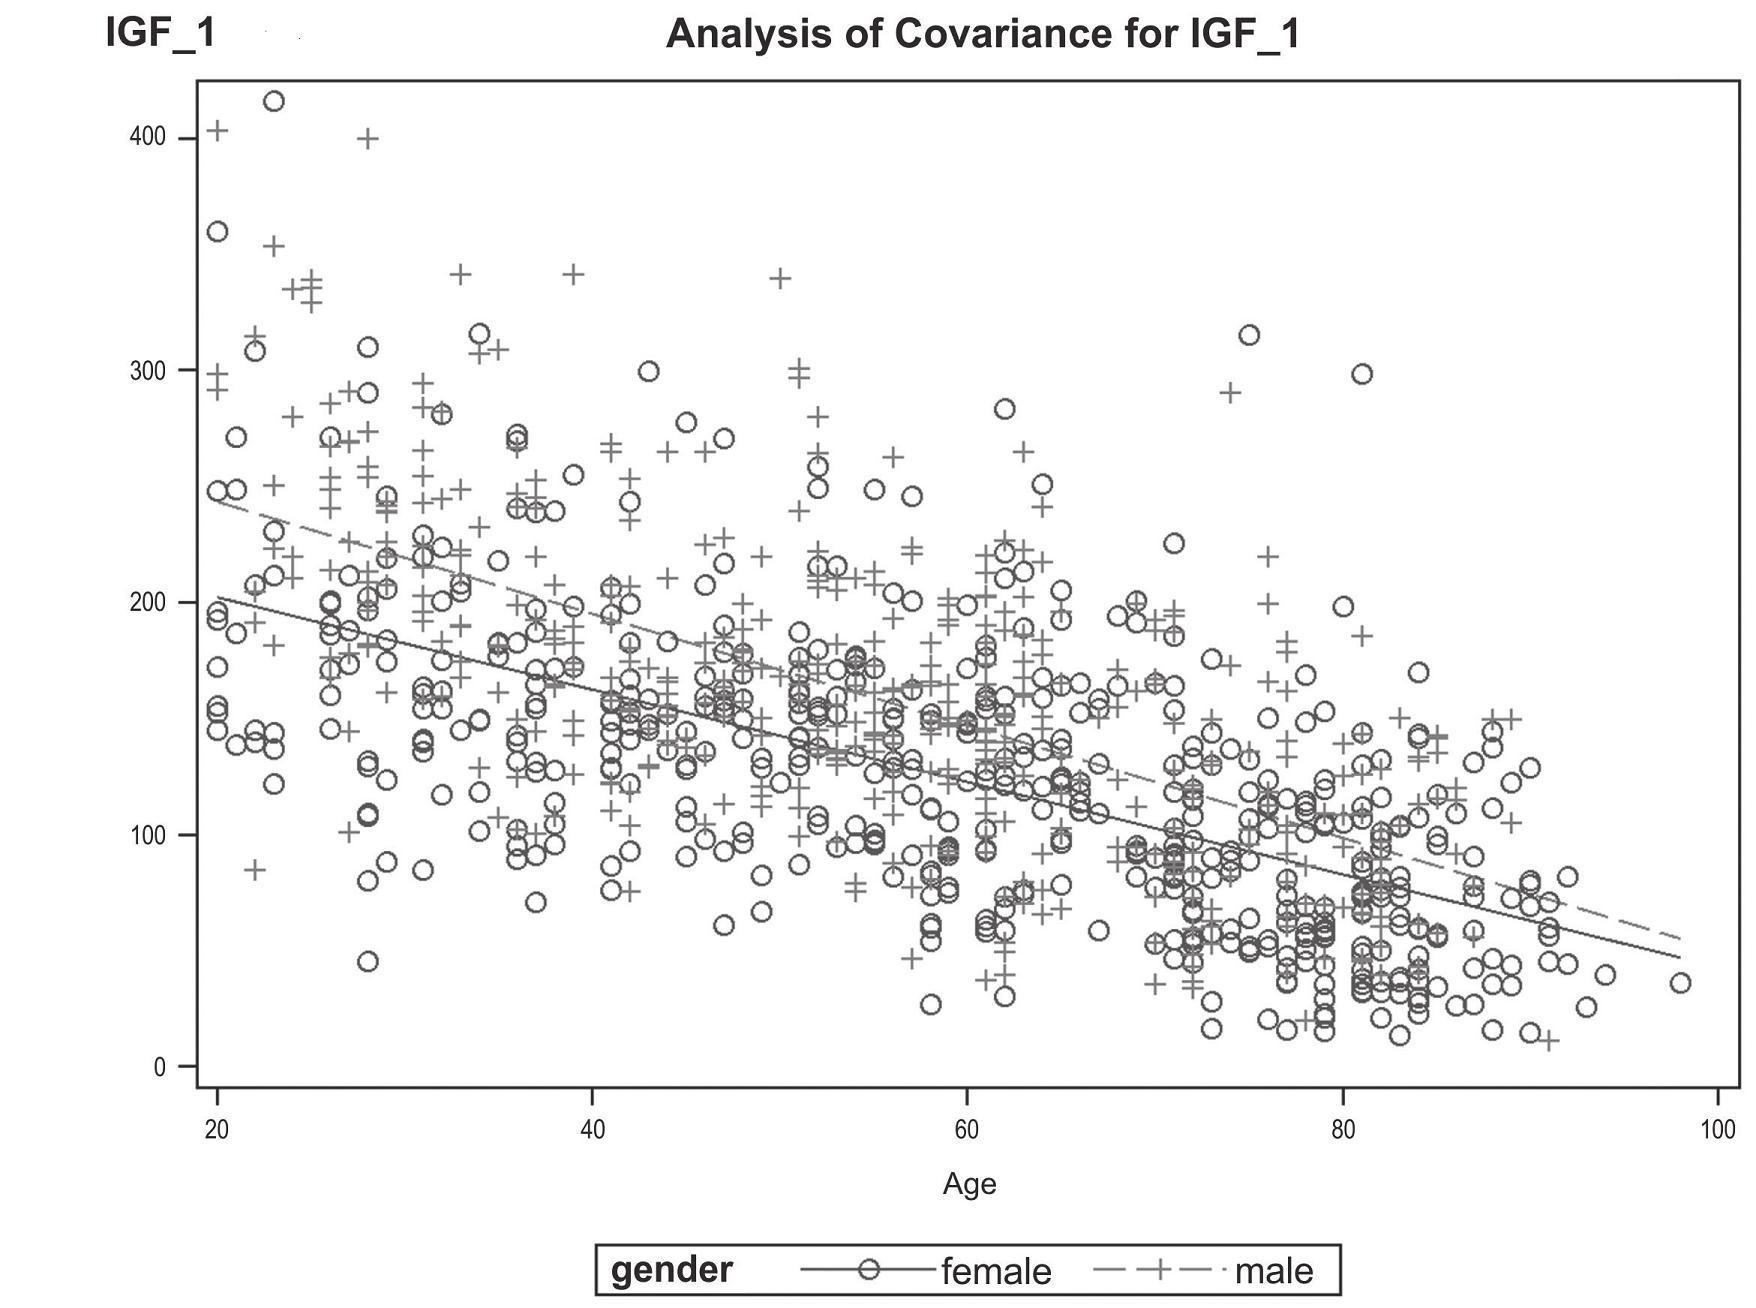 Fig. 1. IGF1 – Example of Linear Regression Plots by Gender